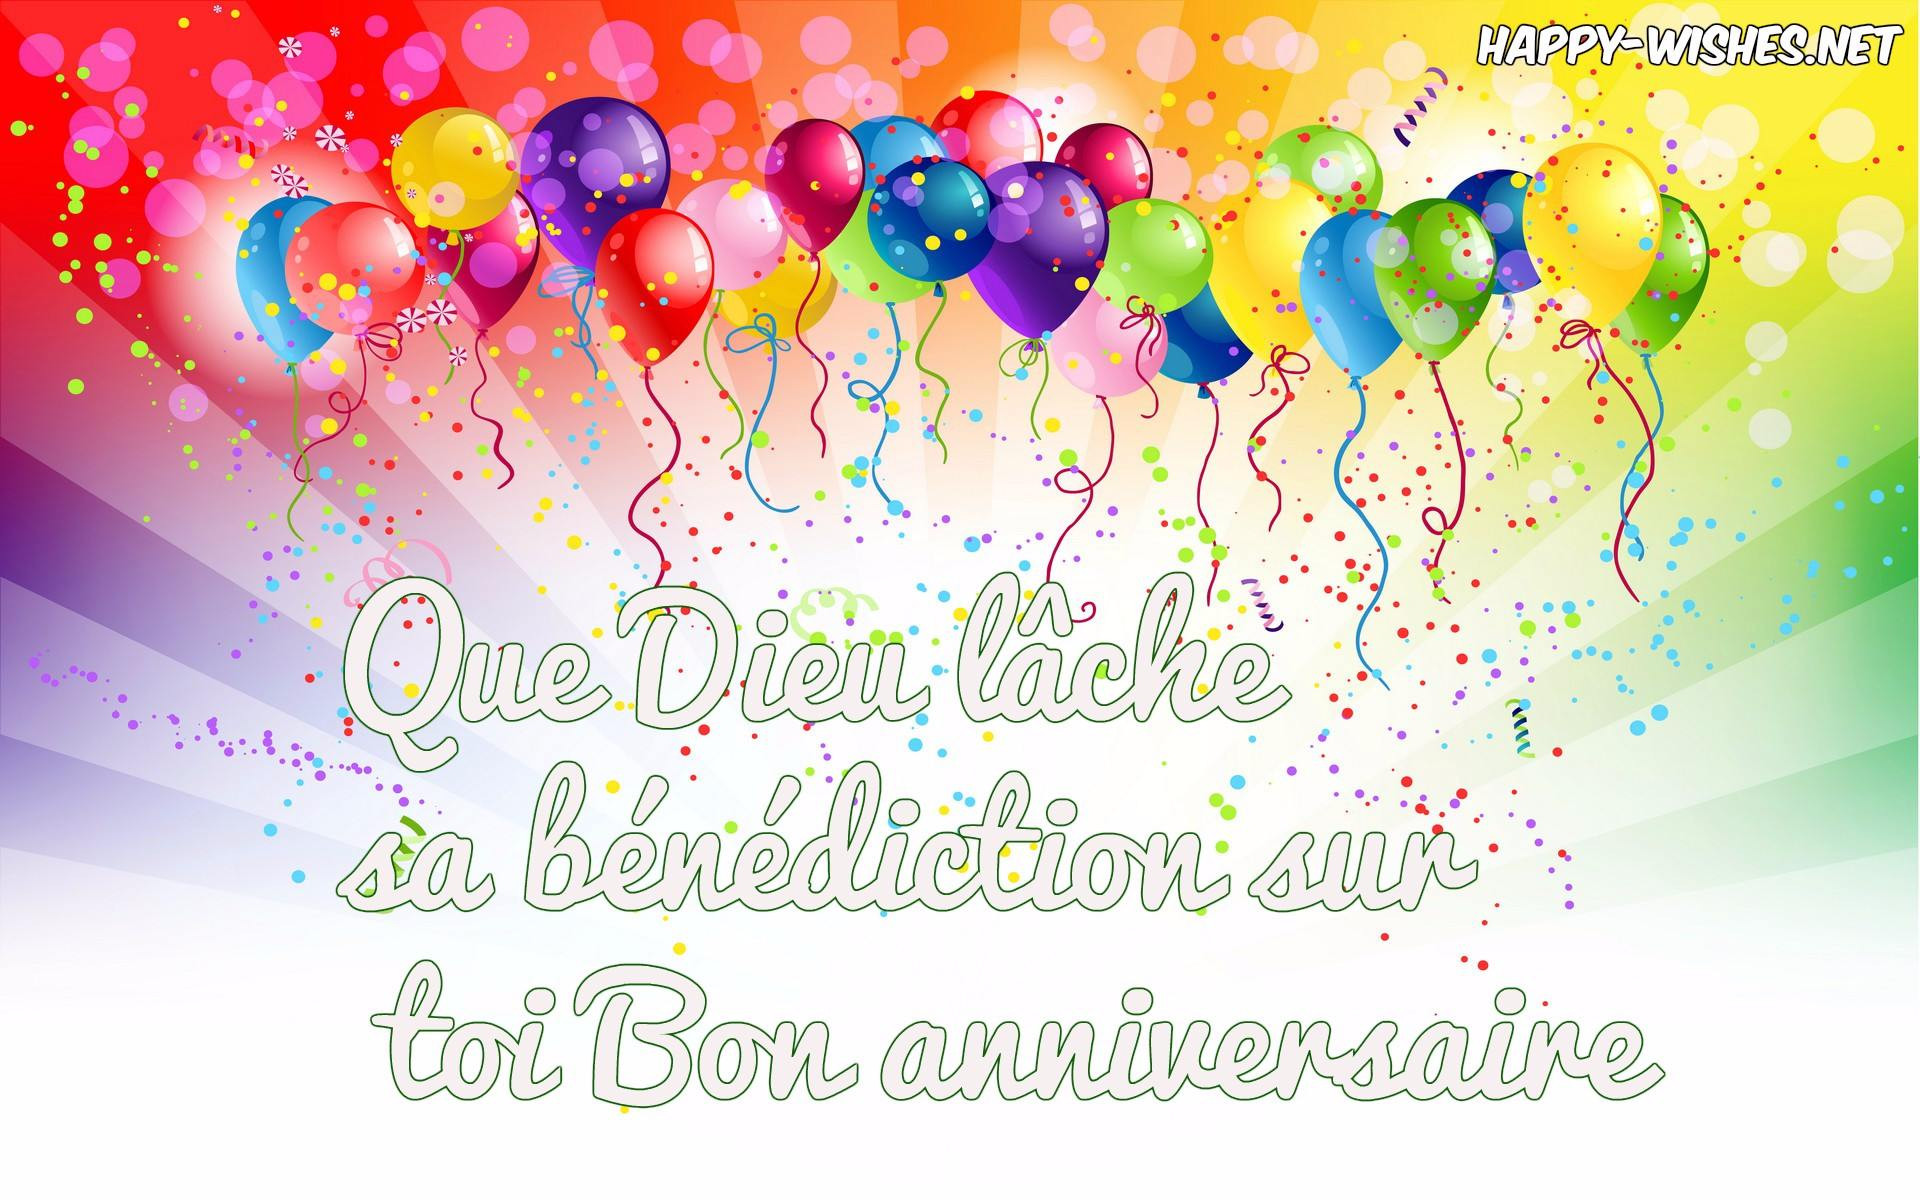 Best ideas about Happy Birthday Wishes In French . Save or Pin Happy Birthday Wishes In French Bon anniversaire Happy Now.